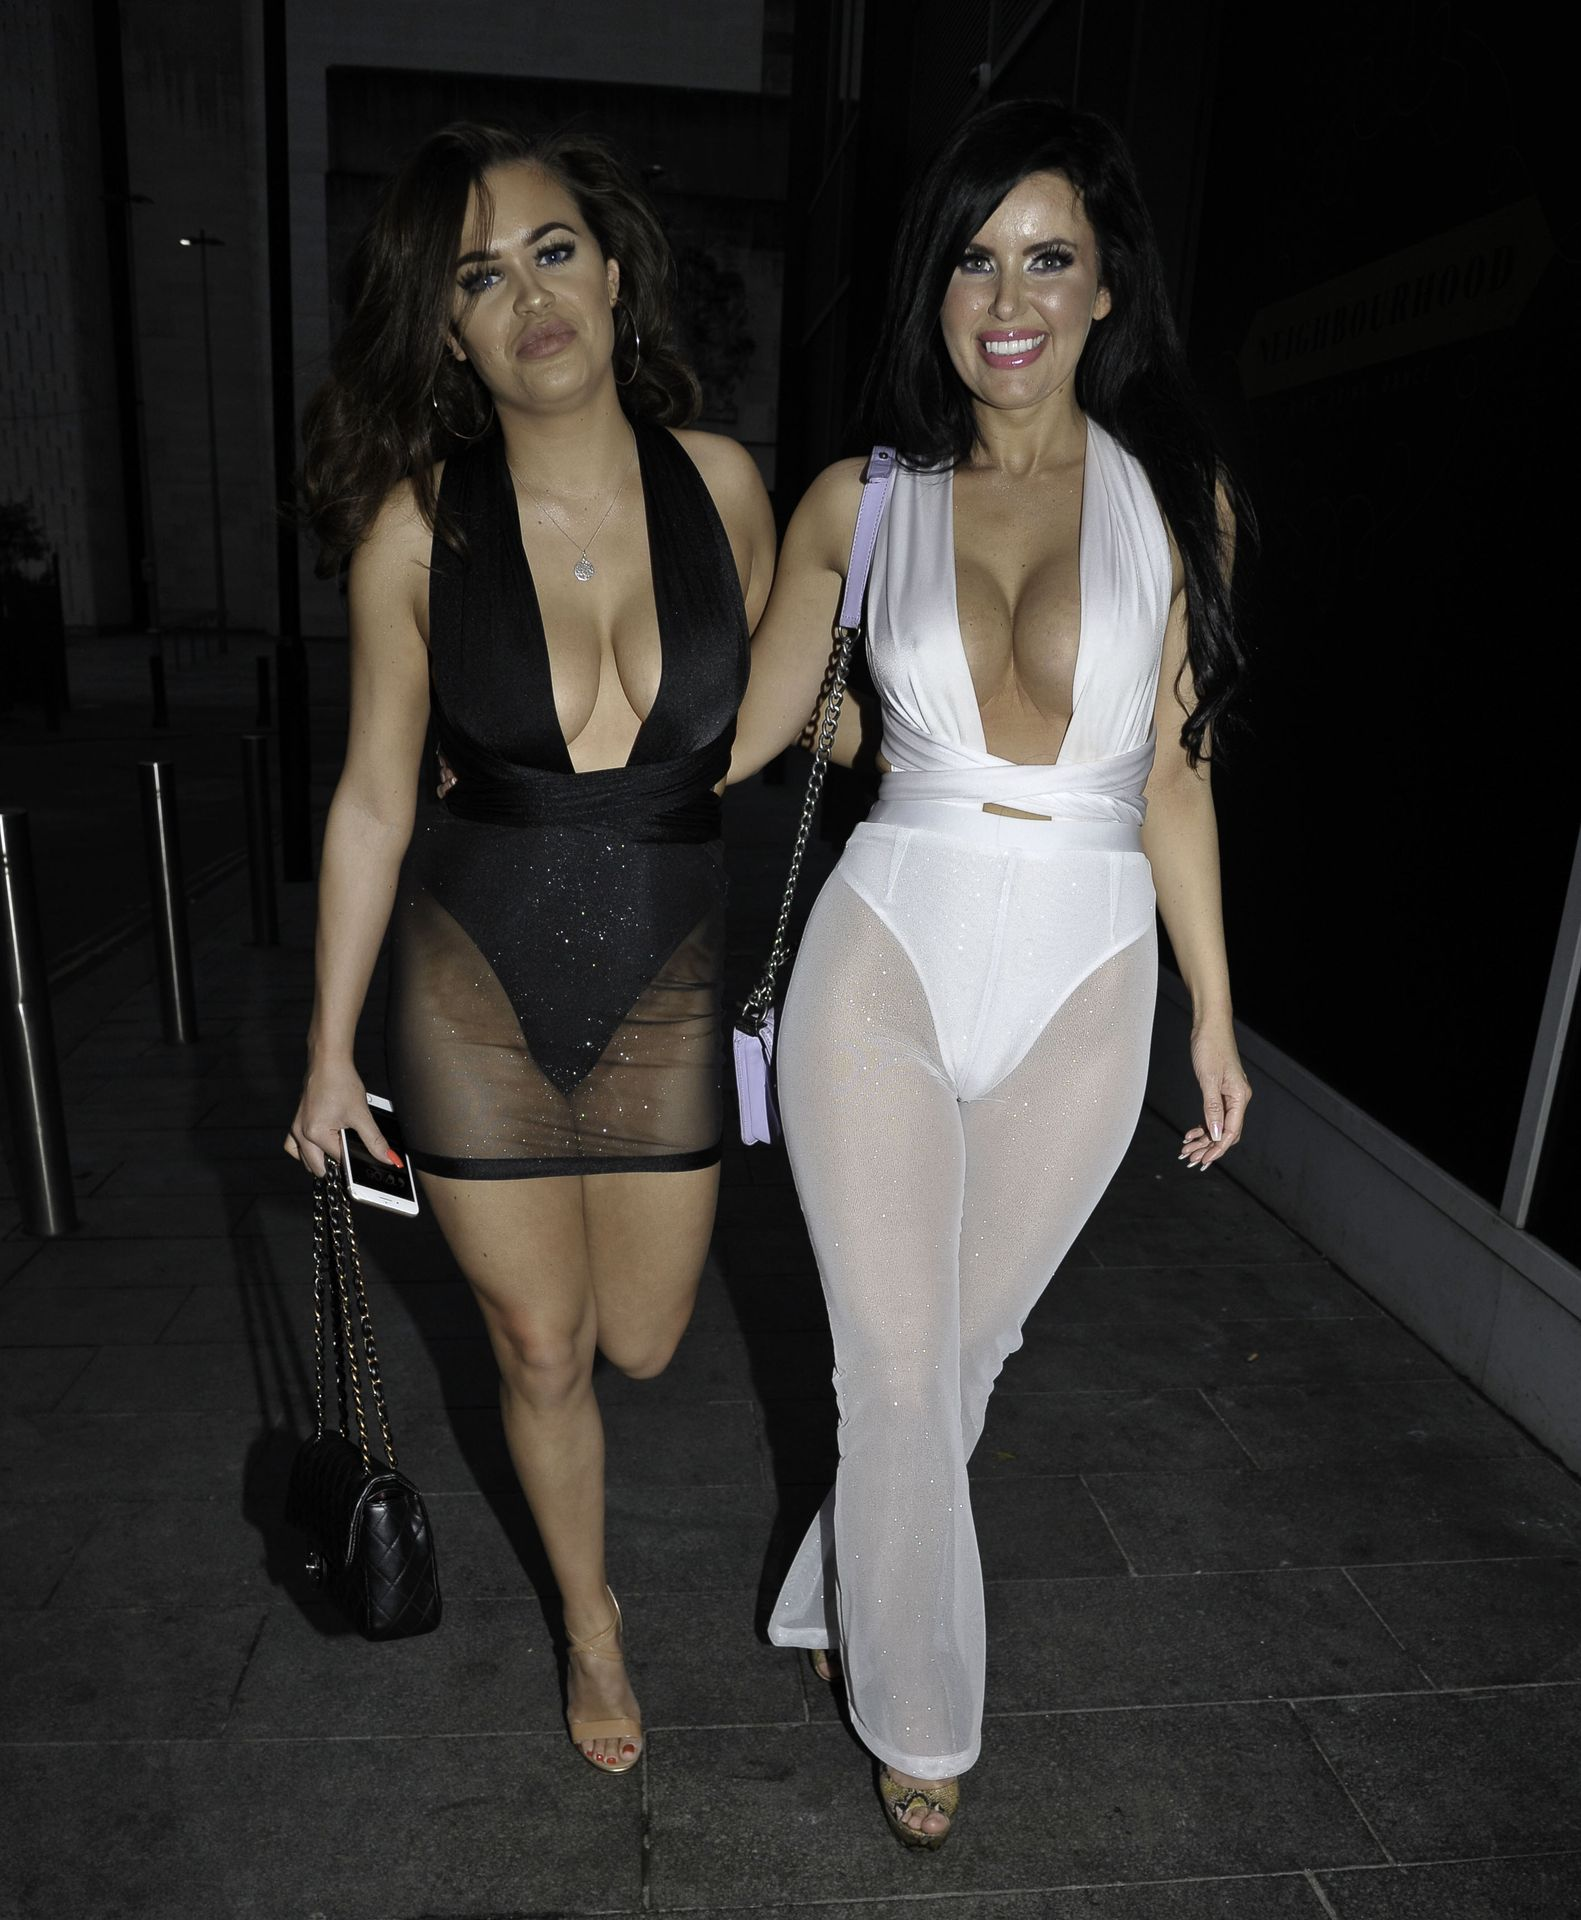 Rhianne Saxby & Sarah Longbottom Look Hot In Manchester 0015